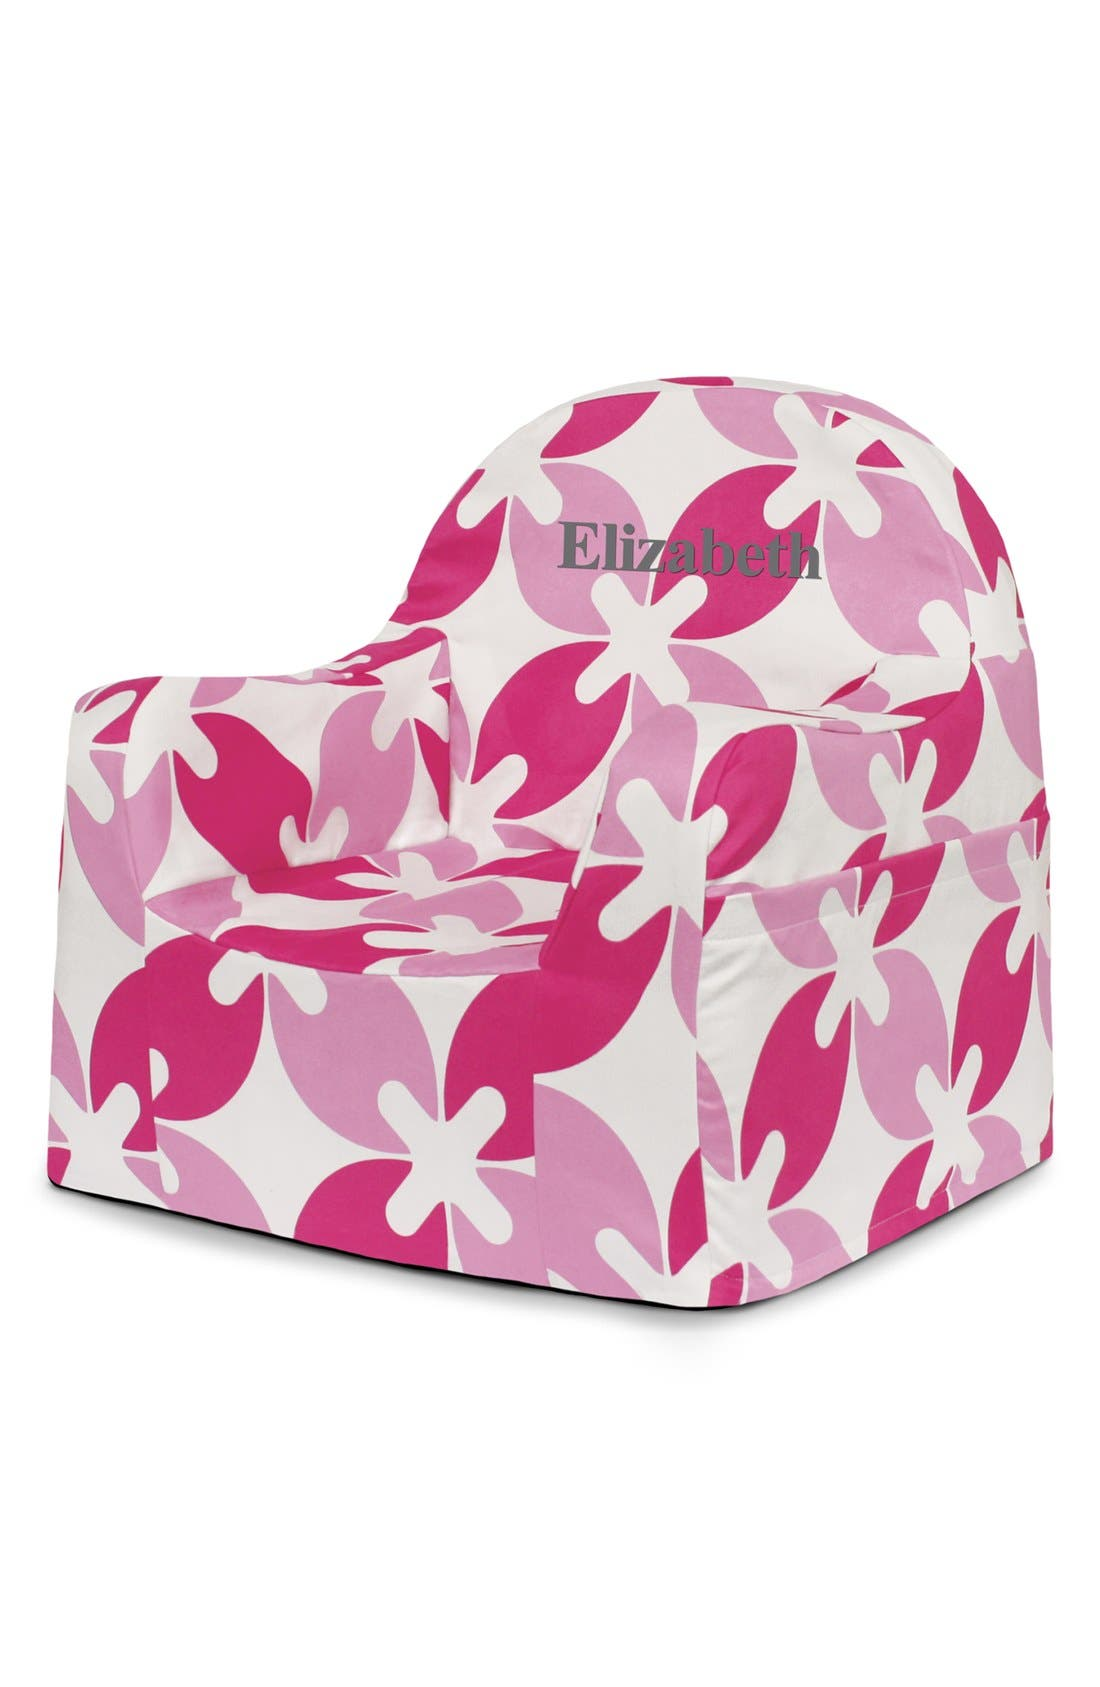 'Personalized Little Reader' Chair,                         Main,                         color, Pink Leaves